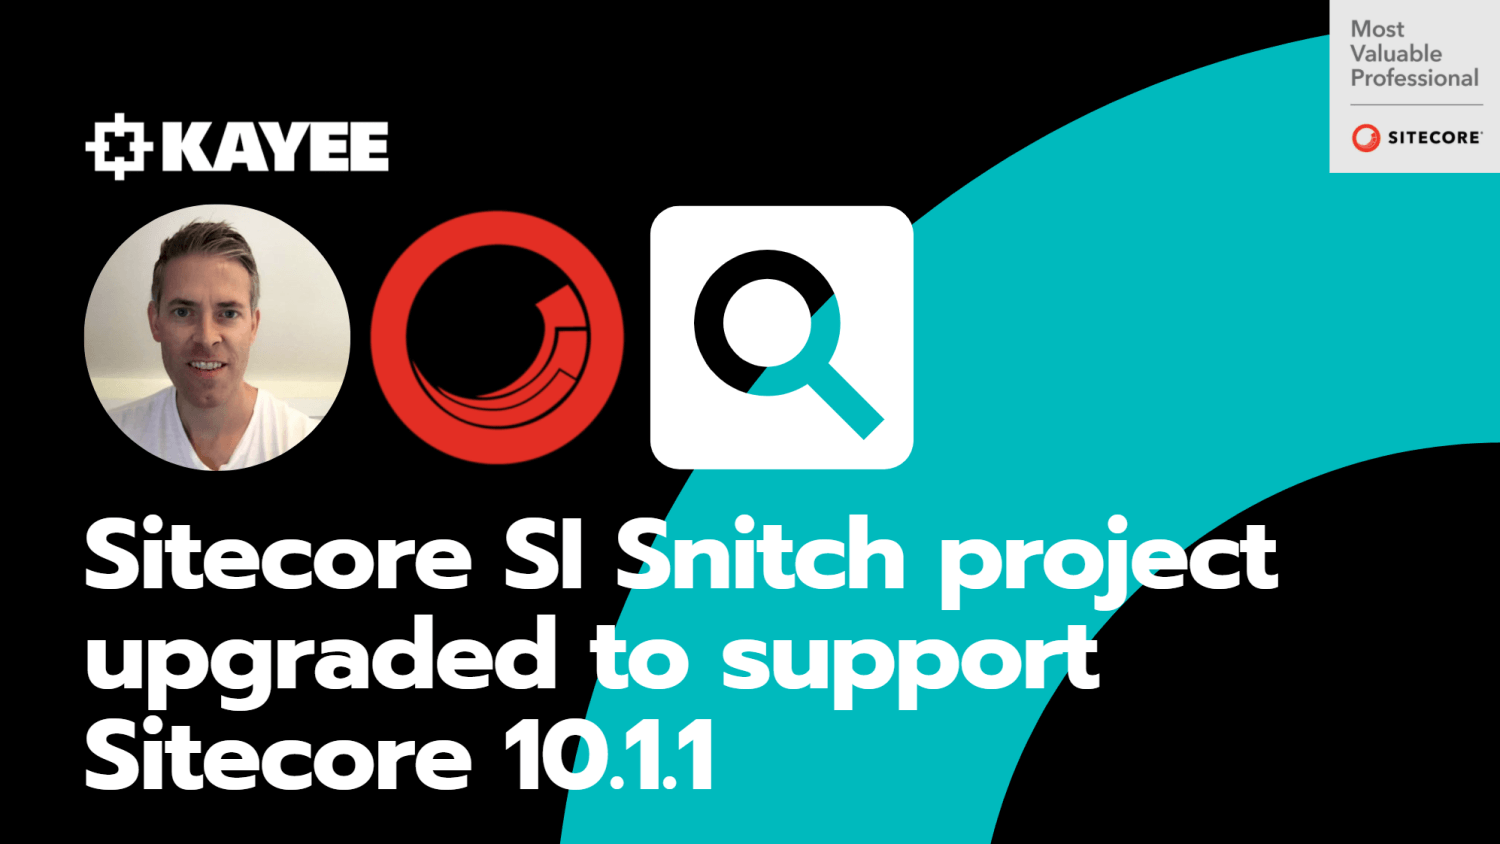 Sitecore SI Snitch project upgraded to support Sitecore 10.1.1